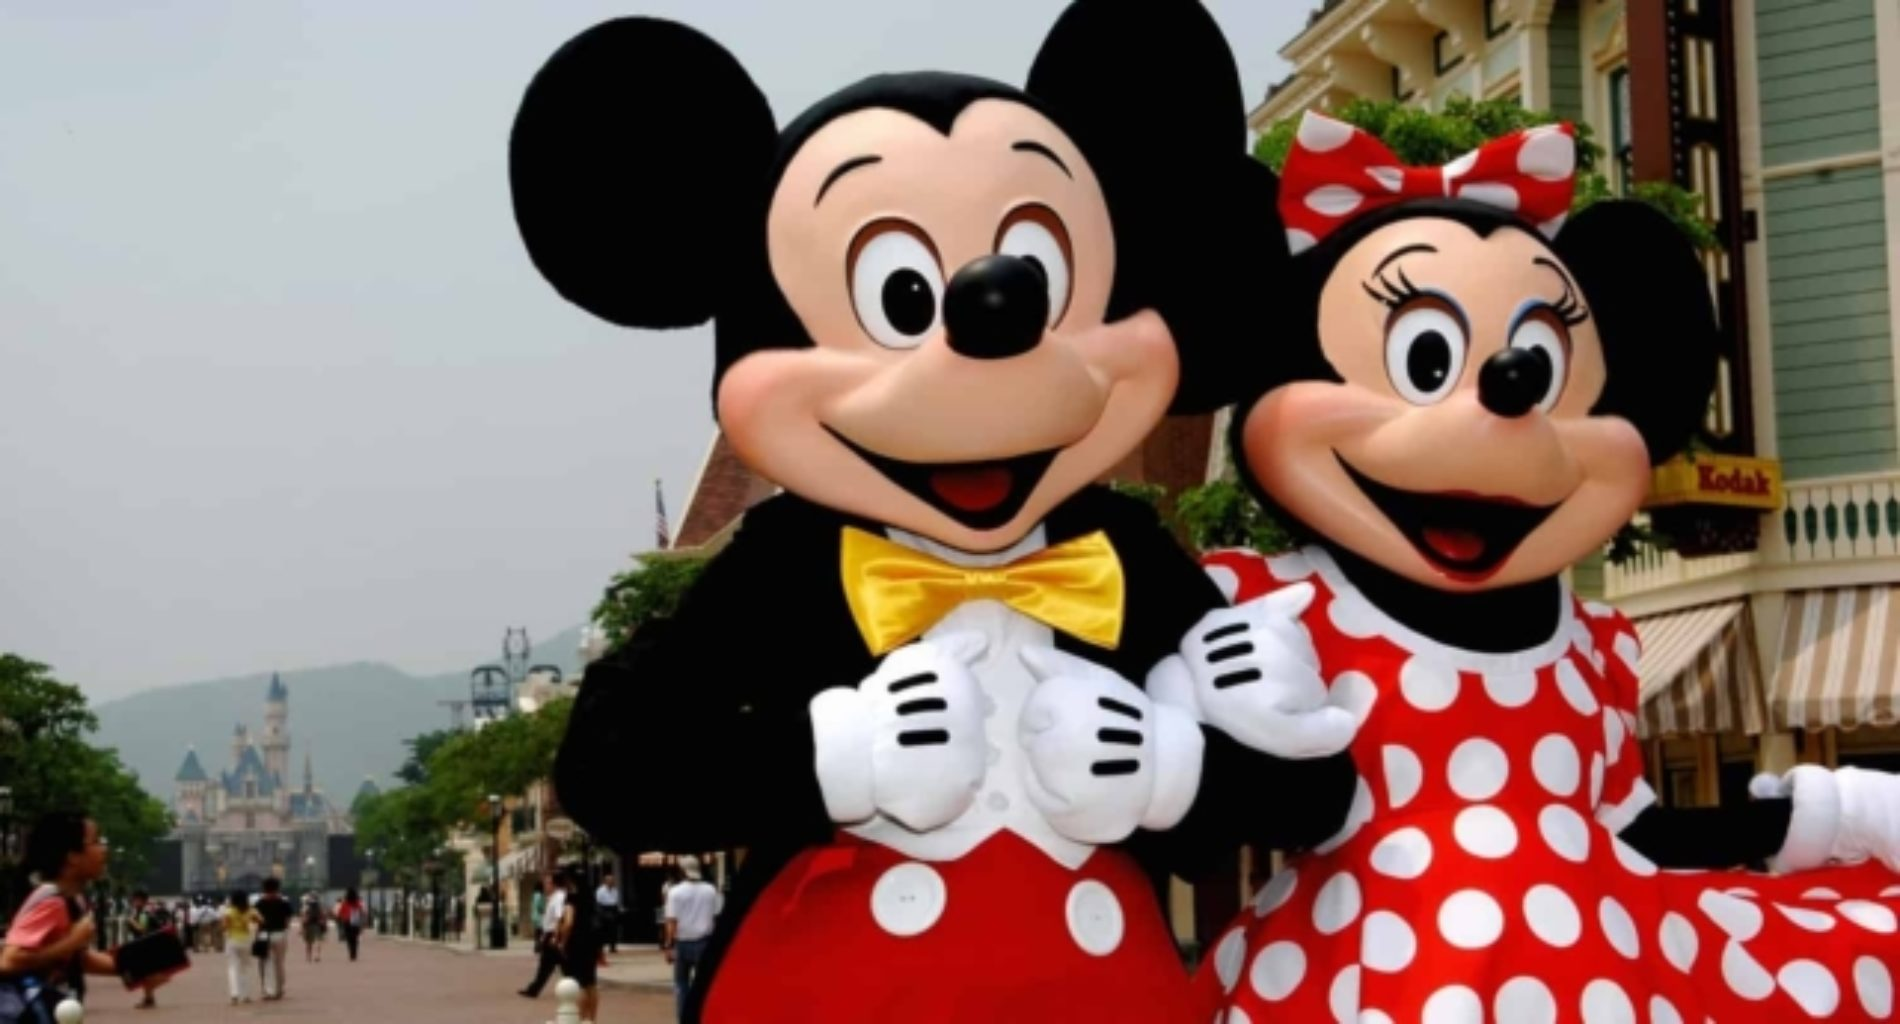 Anti-LGBT group intends to make their own films because Disney is overrun by gays